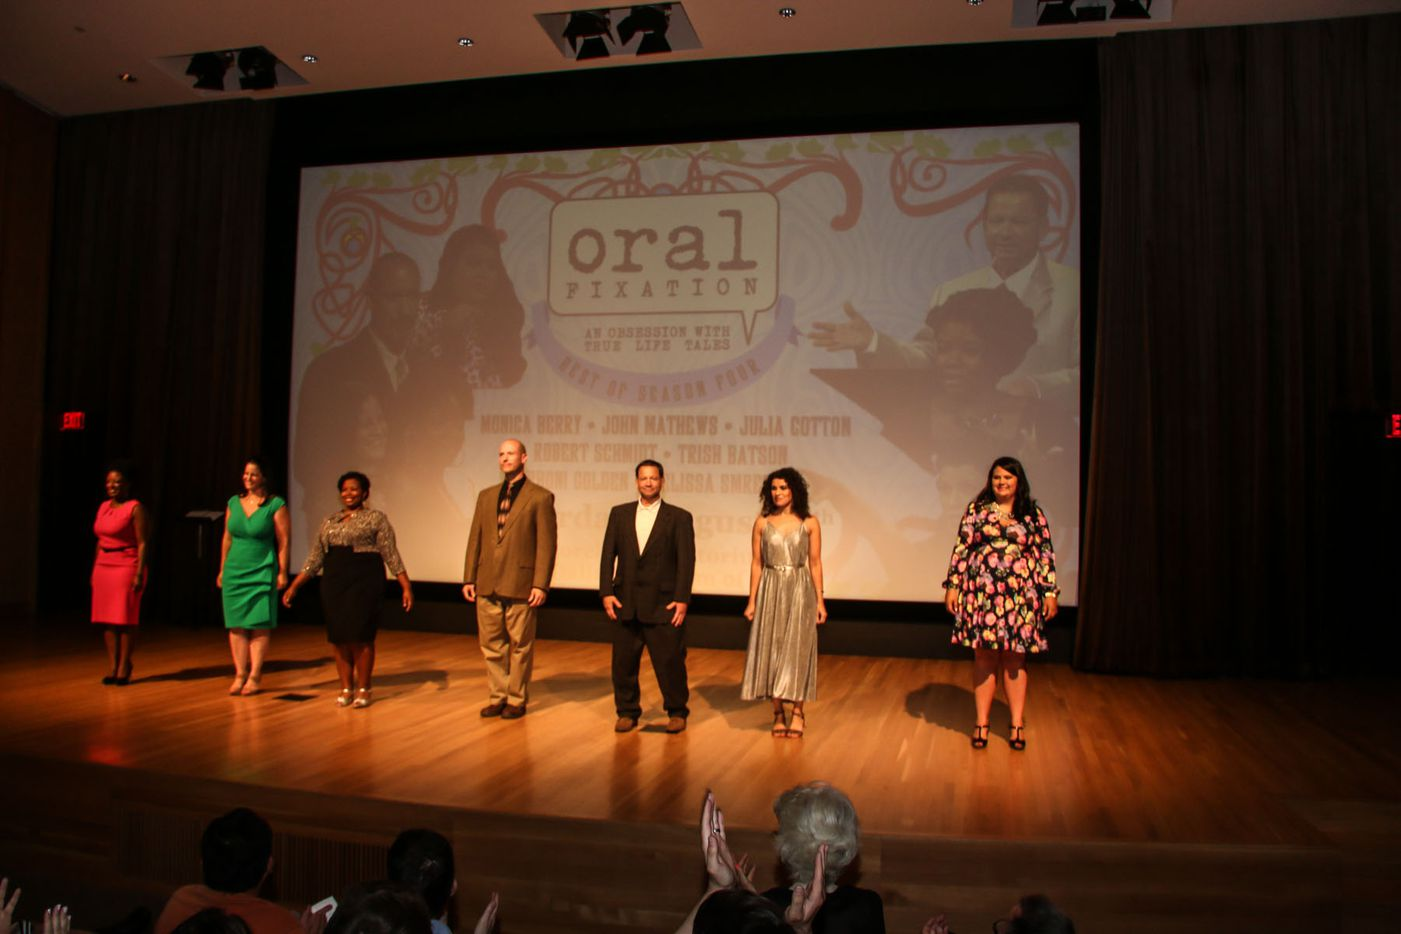 """The cast of storytellers at Oral Fixation's """"The Best of Season Four"""" at the Dallas Museum of Art on August 15, 2015"""